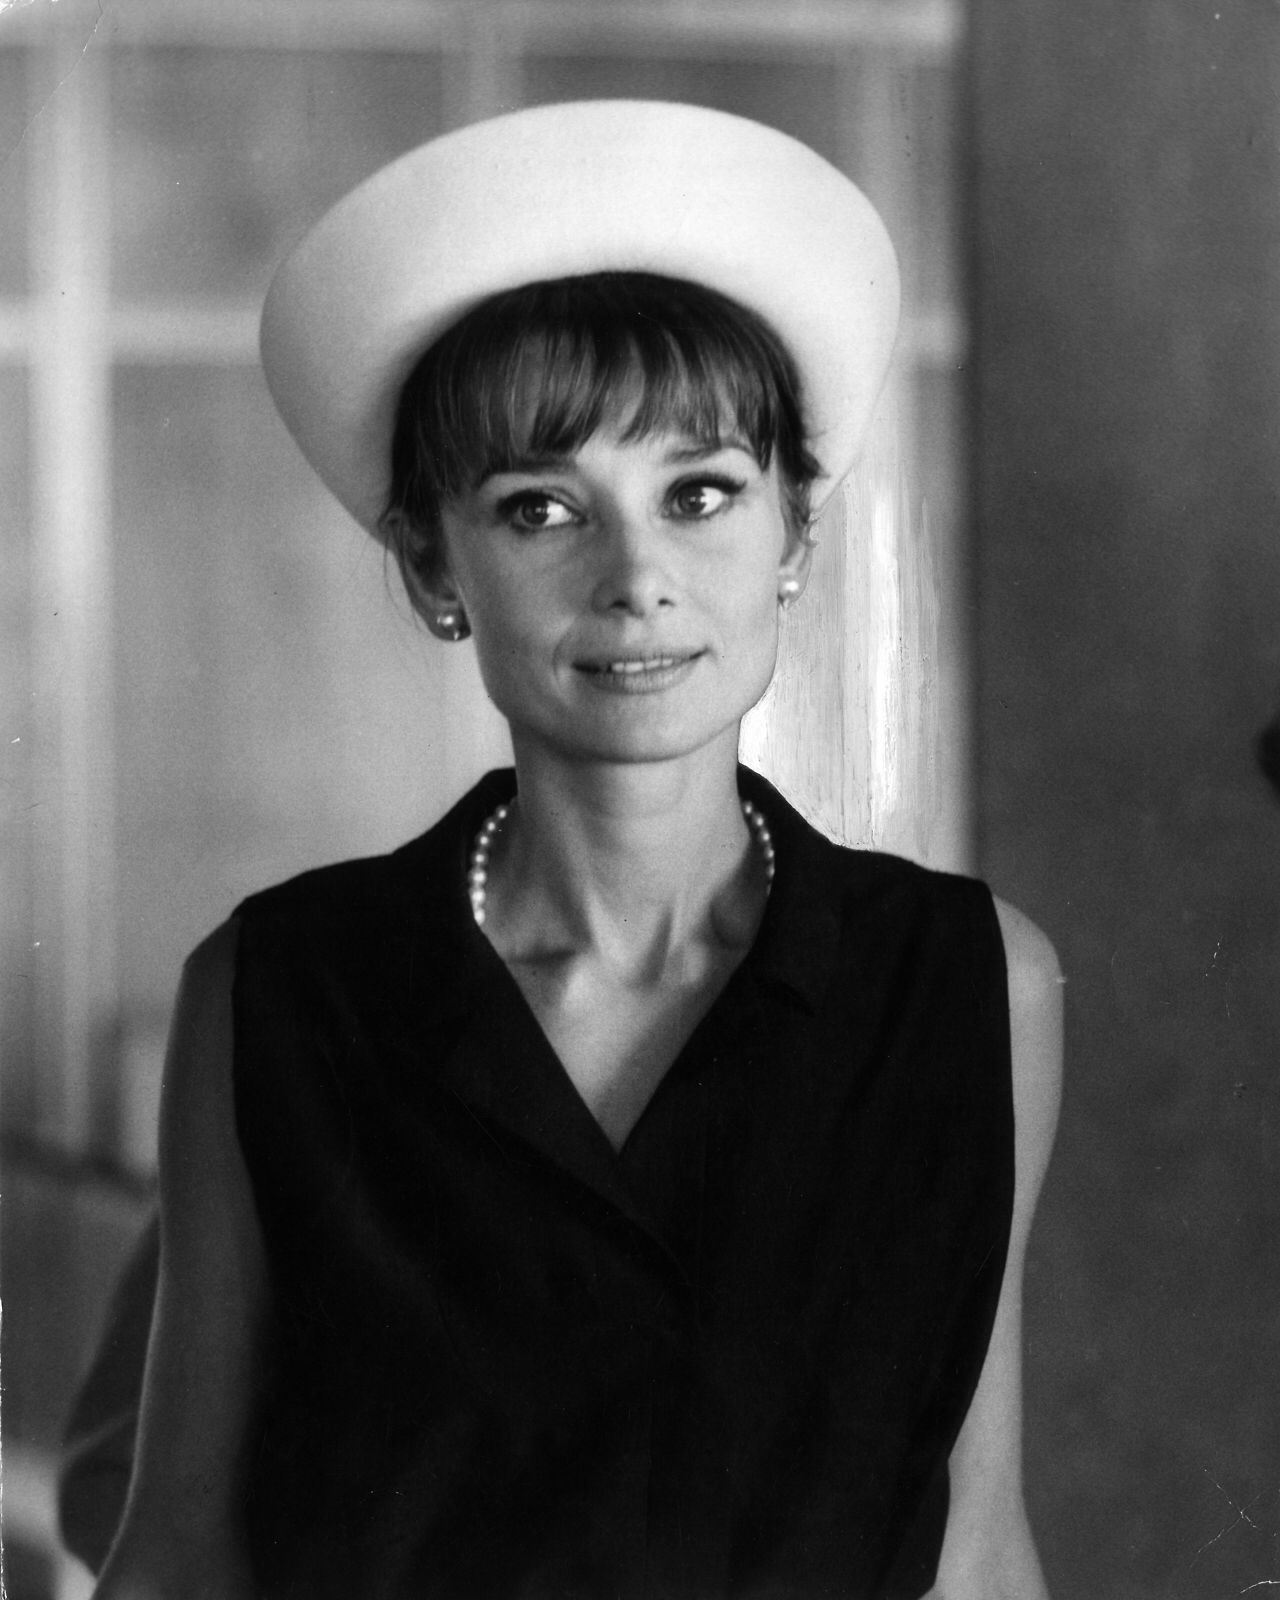 audrey hepburn oh just audrey pinterest audrey hepburn belleza cl sica y fotos famosas. Black Bedroom Furniture Sets. Home Design Ideas